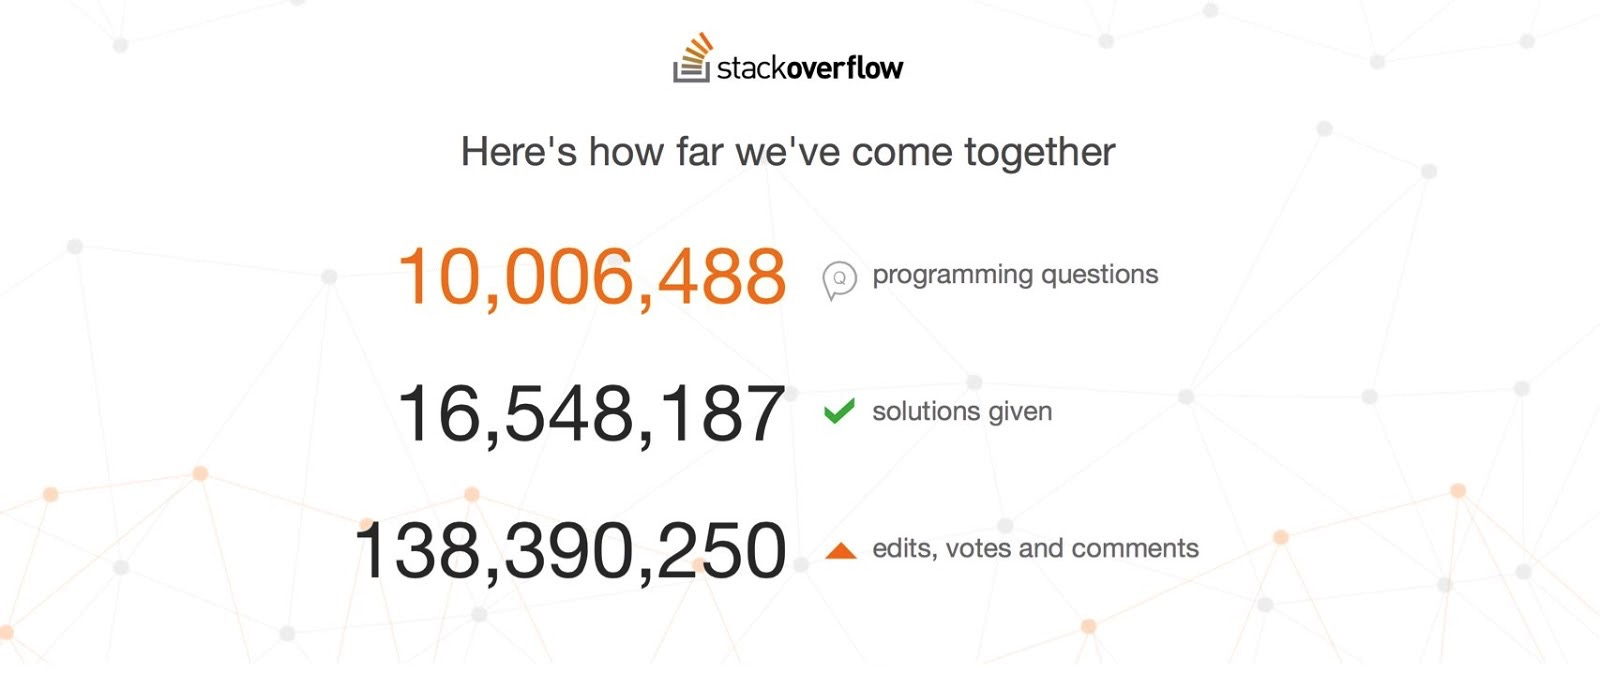 Stack Overflow Has Answered 10 million questions